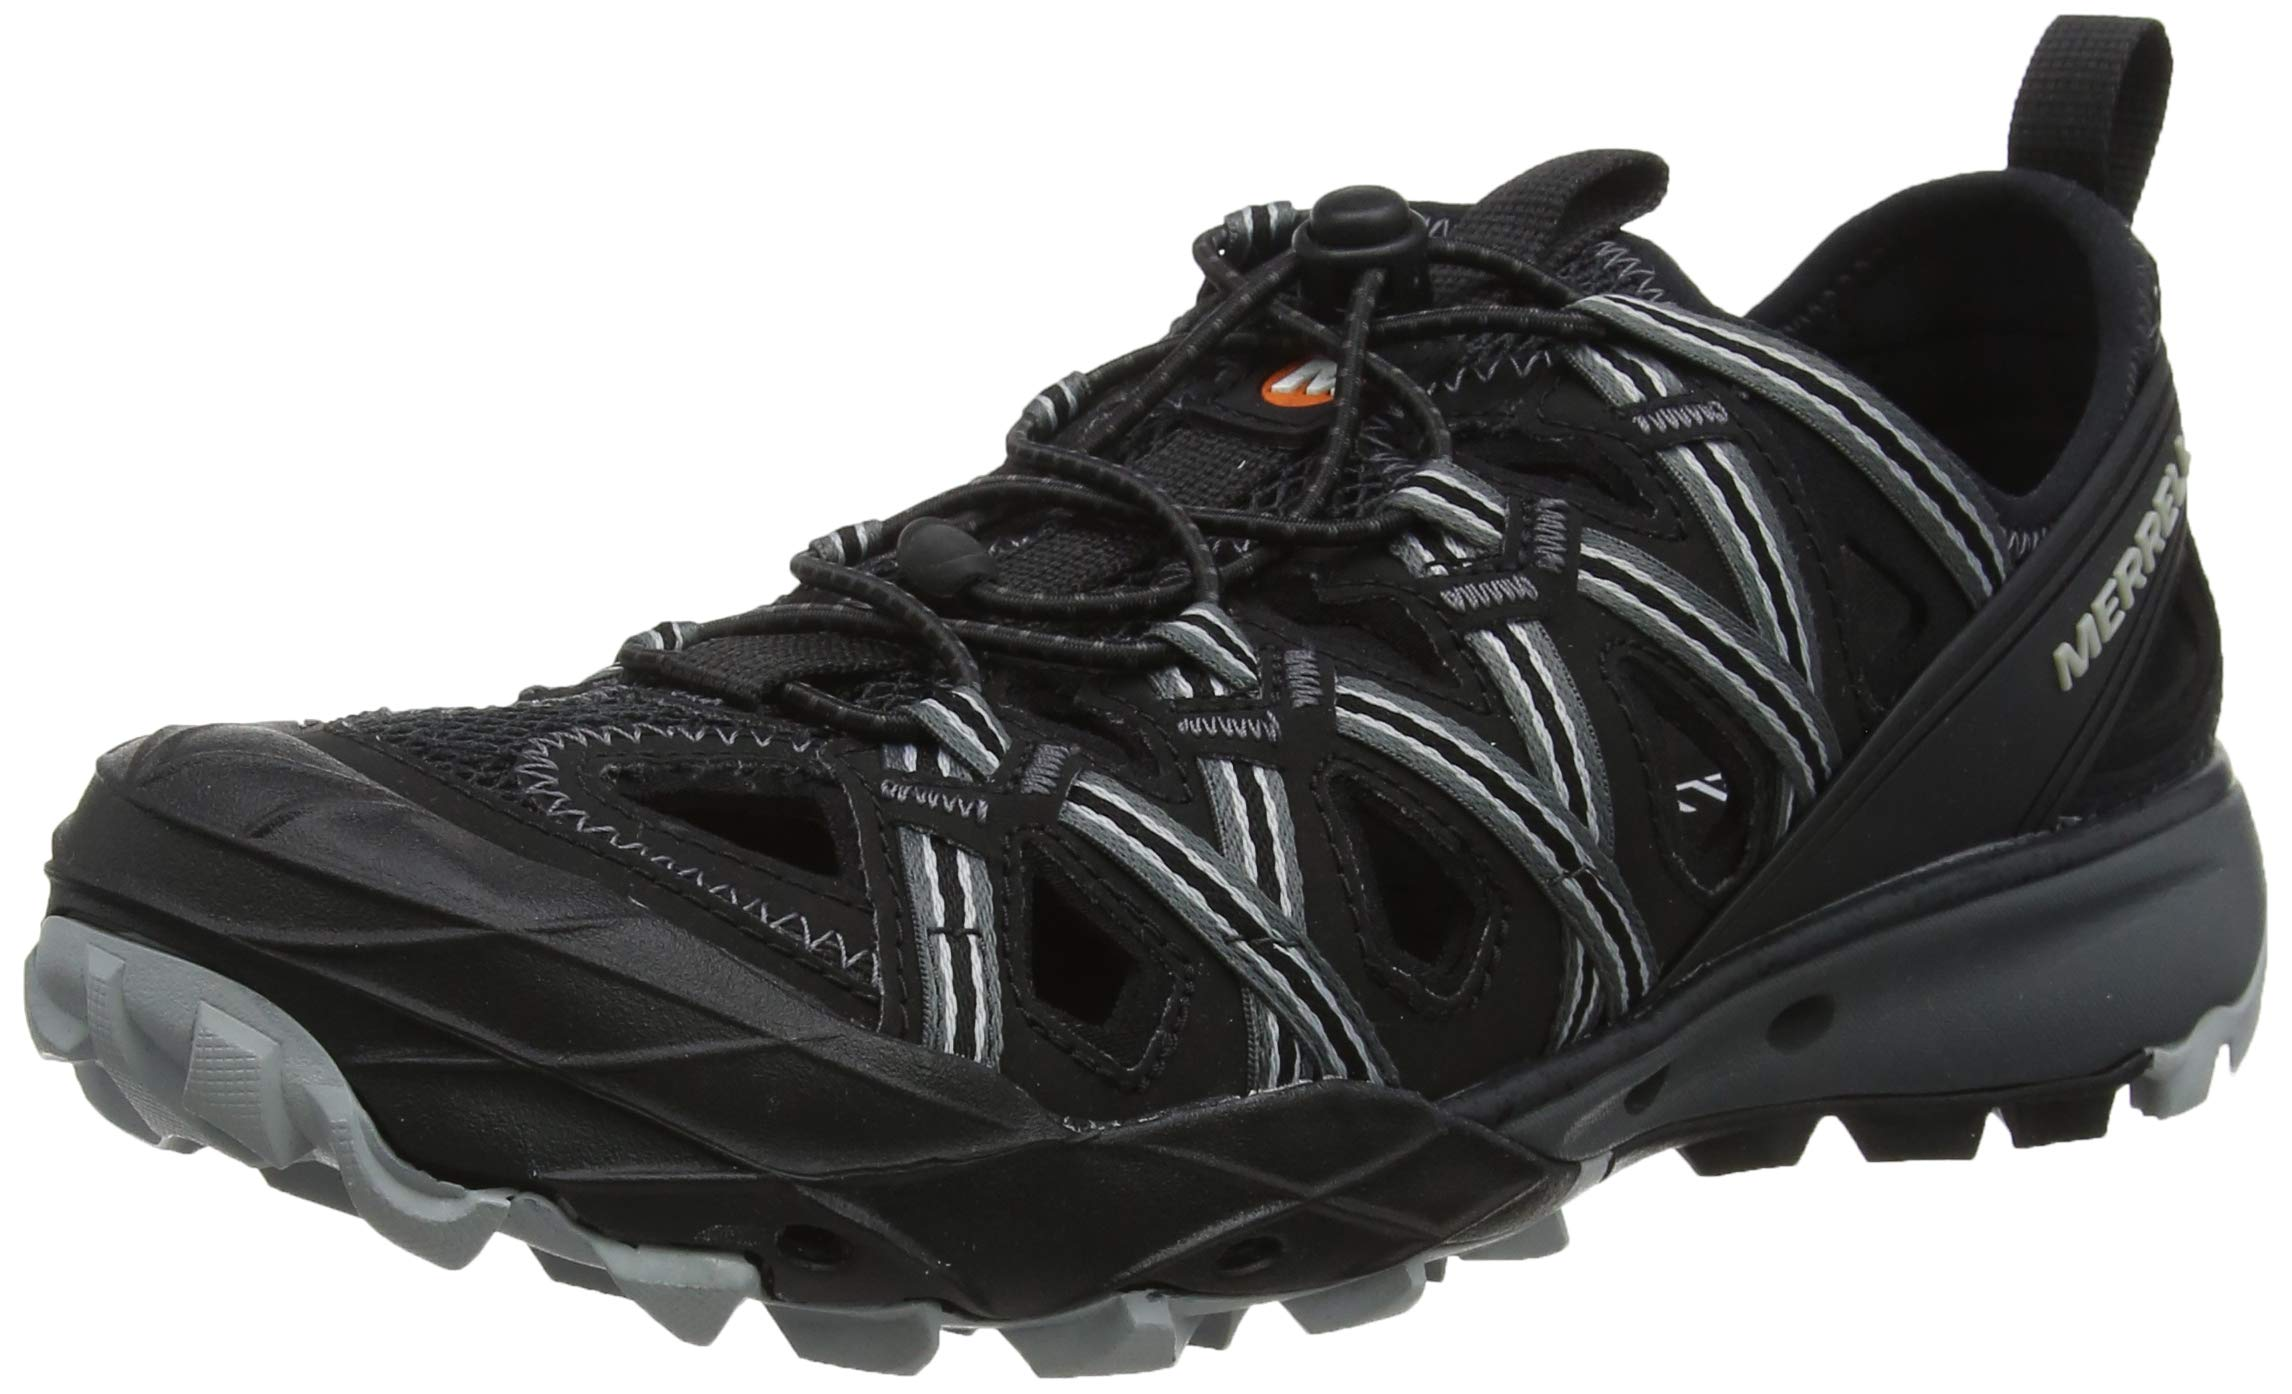 Merrell Men's Choprock Water Shoes, Black, 7.5 (41.5 EU)